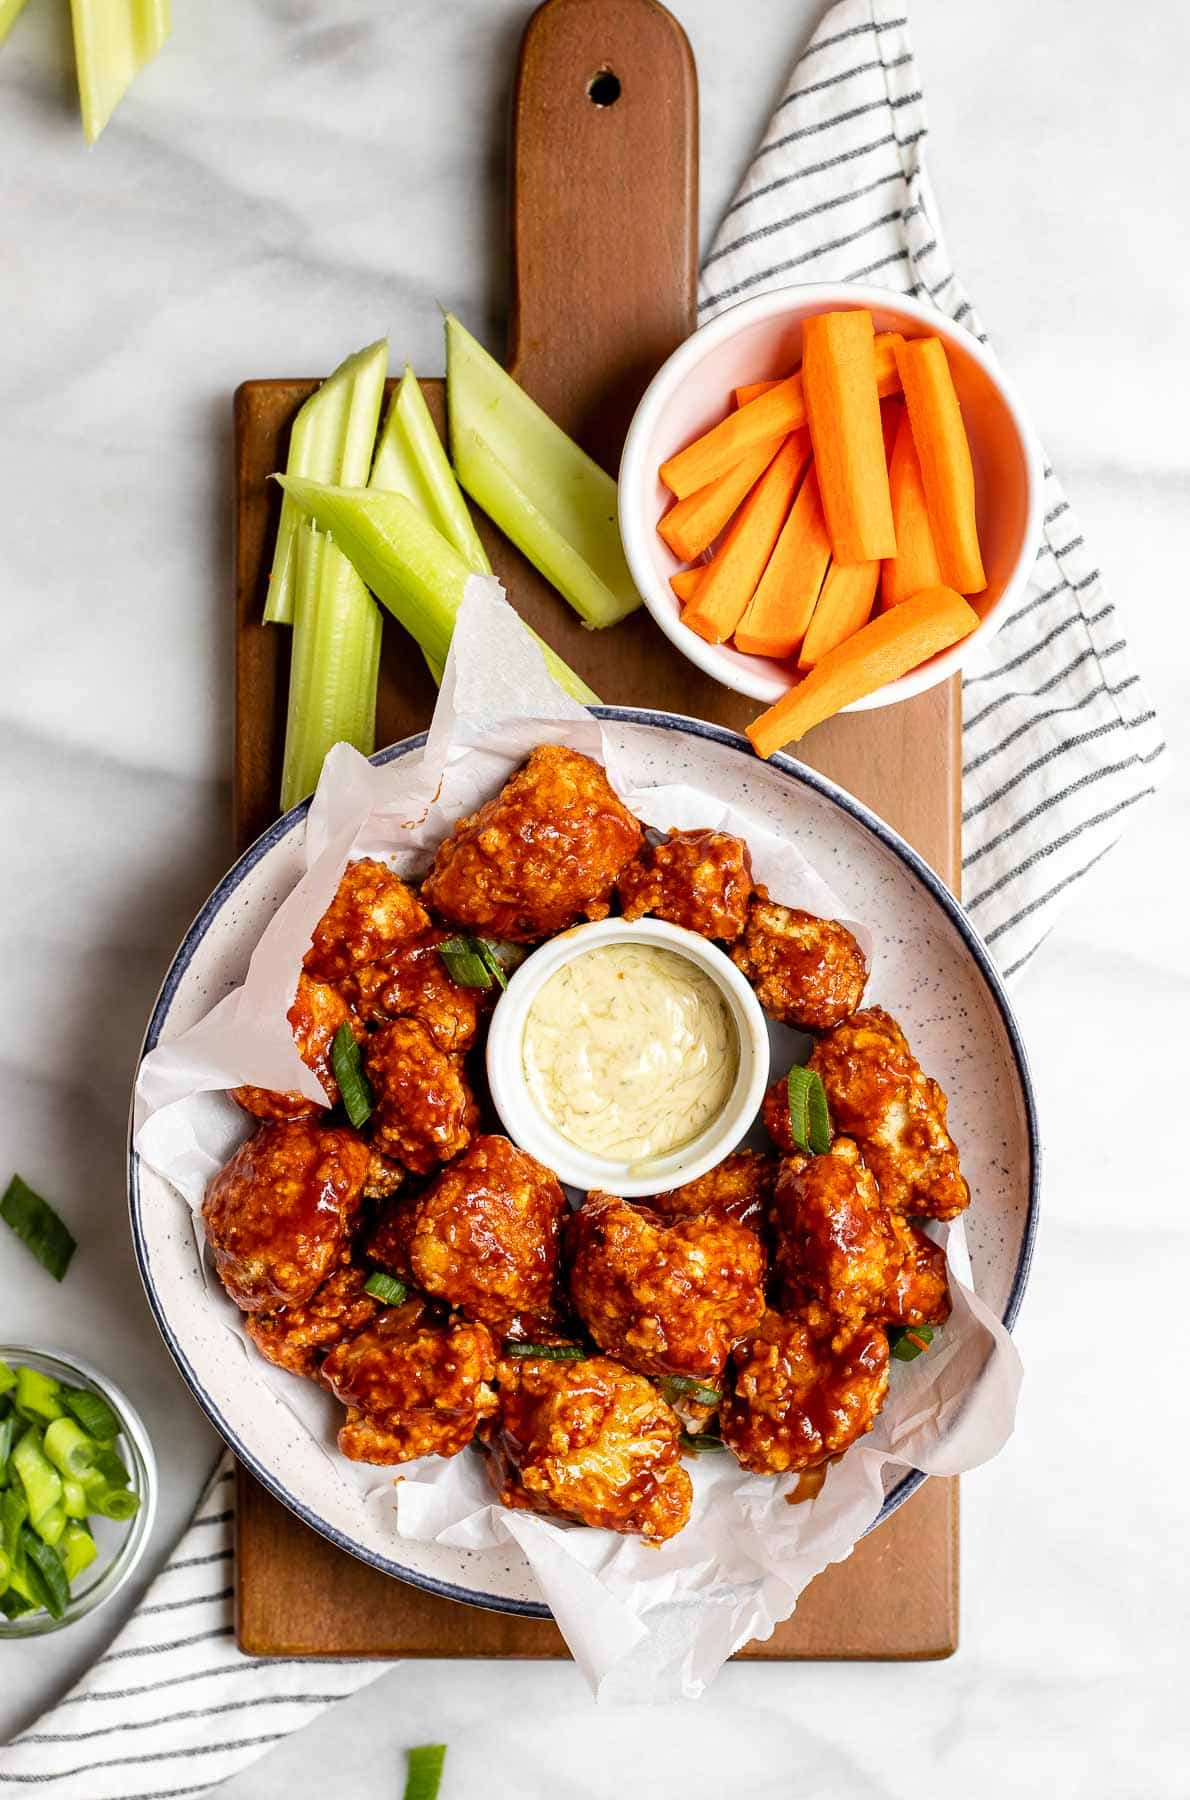 BBQ cauliflower in a bowl with chopped carrots and celery.